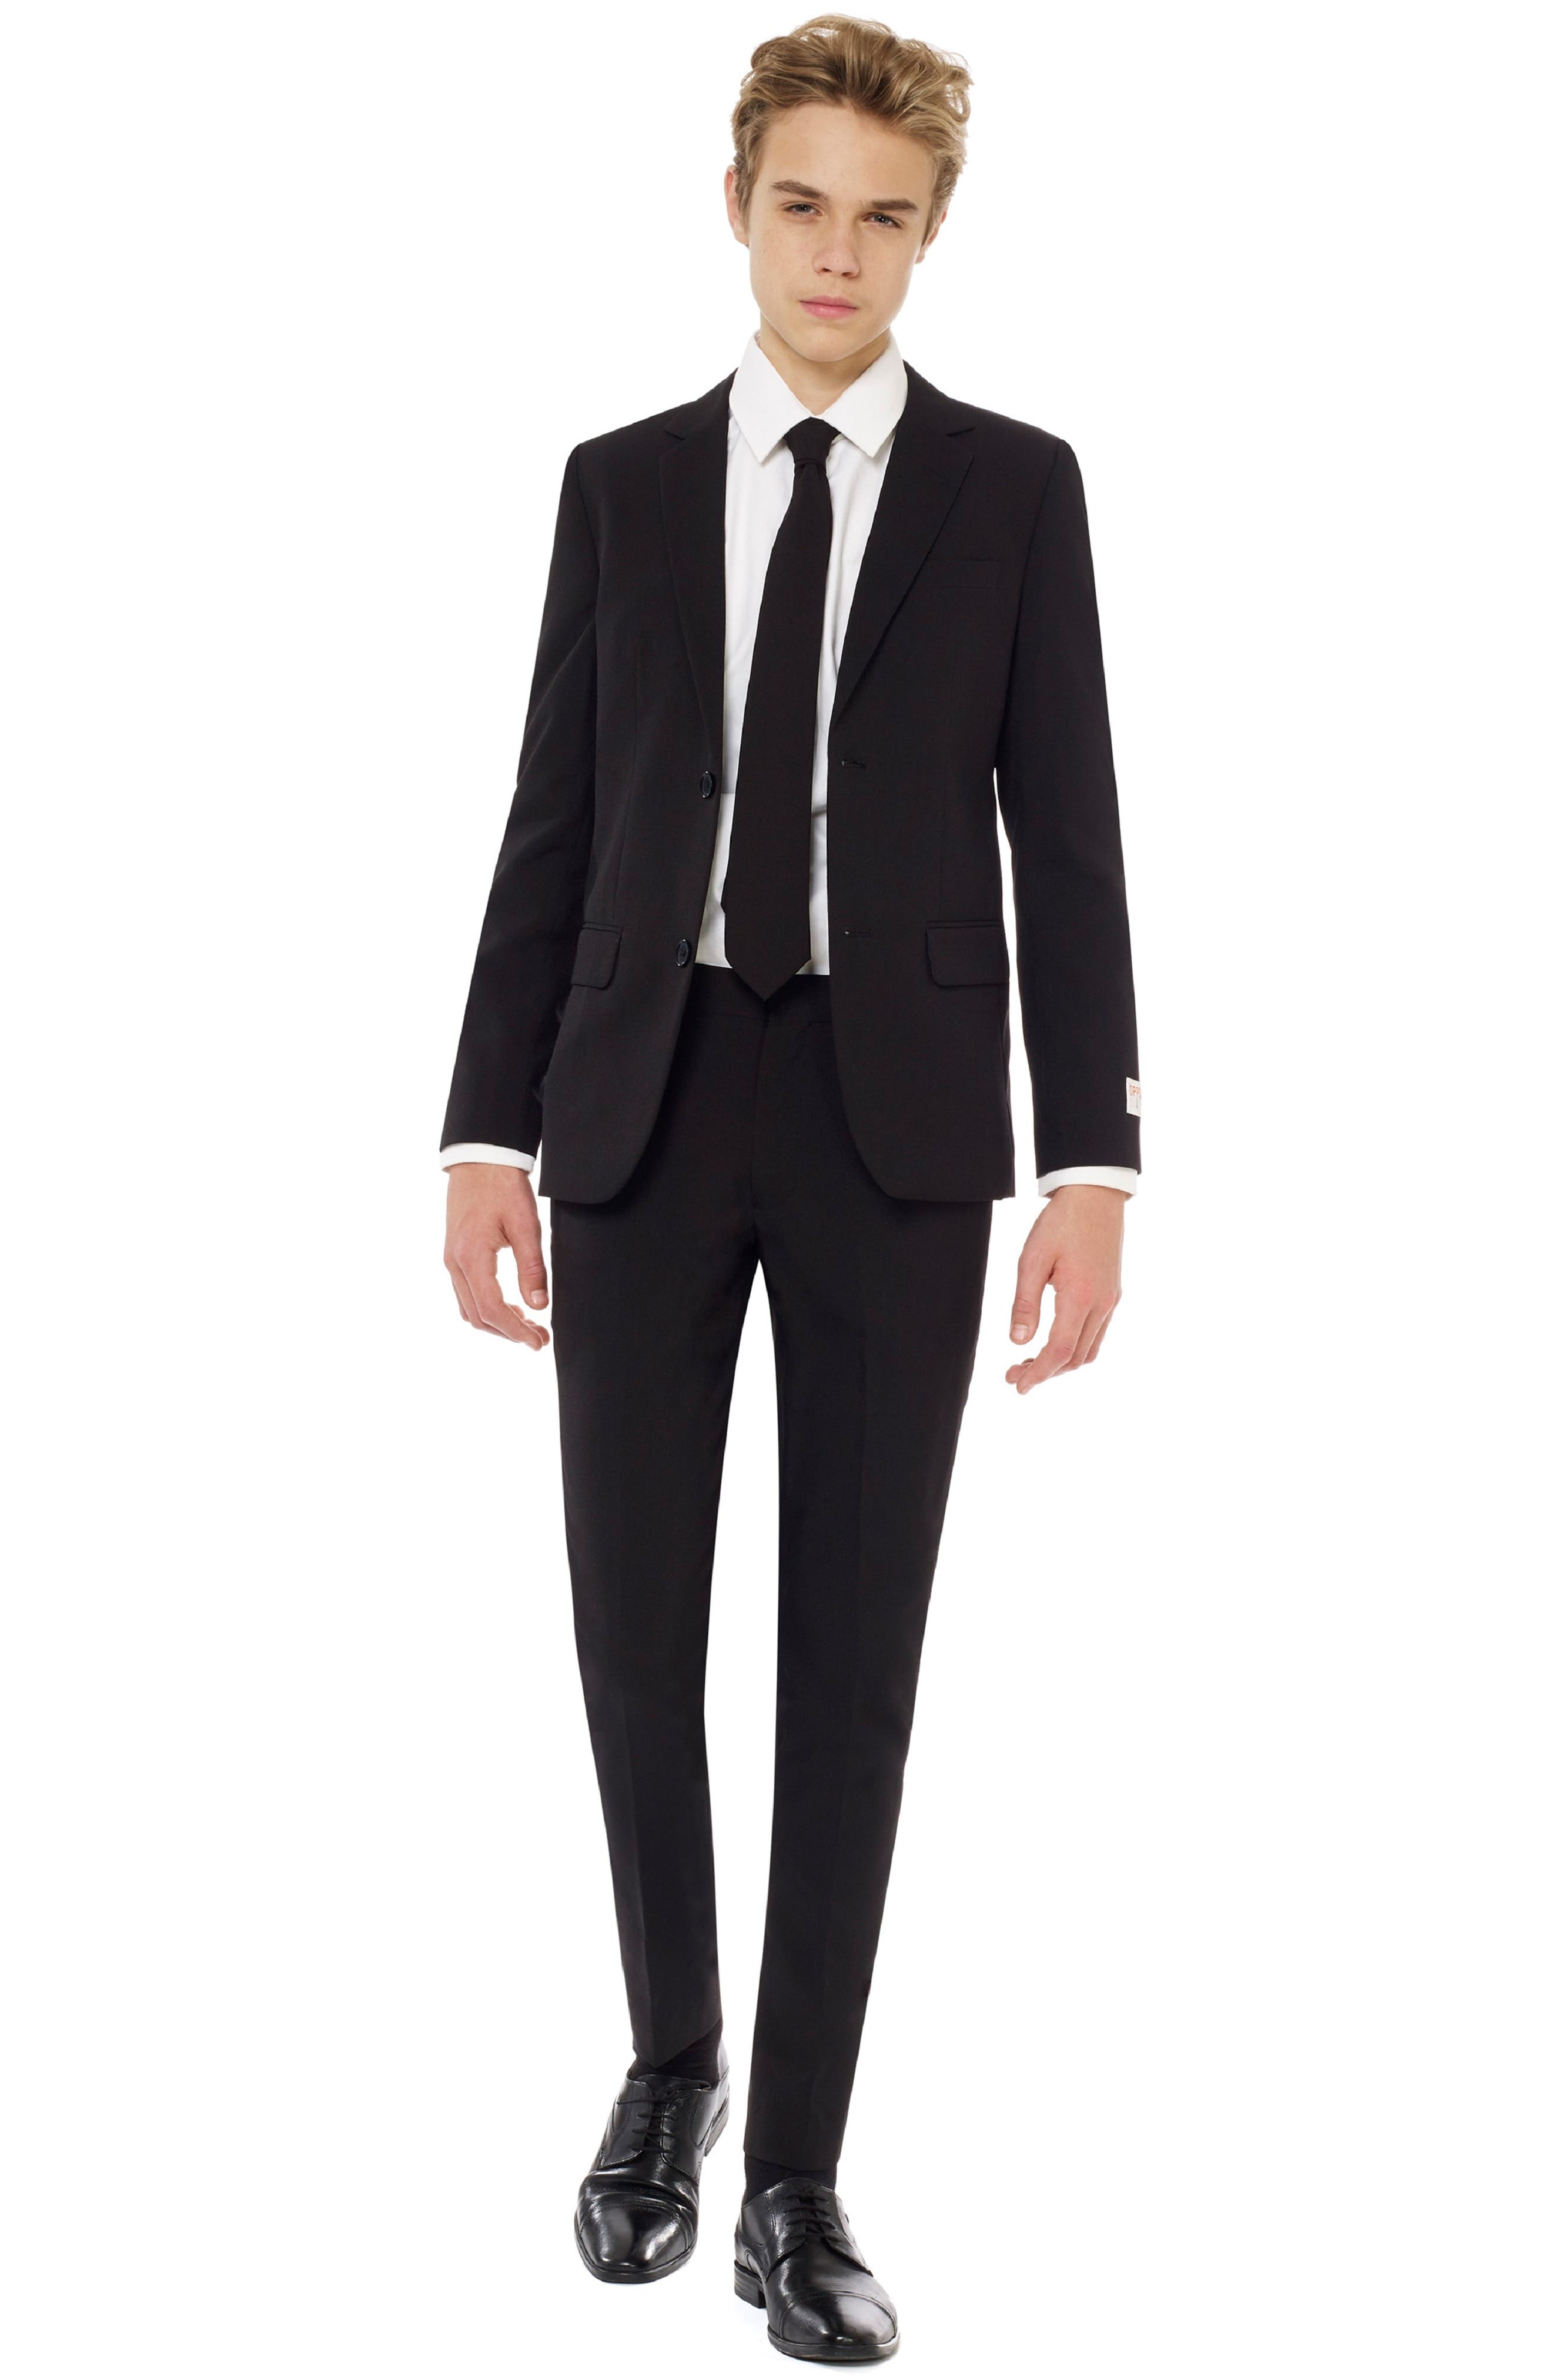 Black Knight Two-Piece Suit with Tie,                             Main thumbnail 1, color,                             011